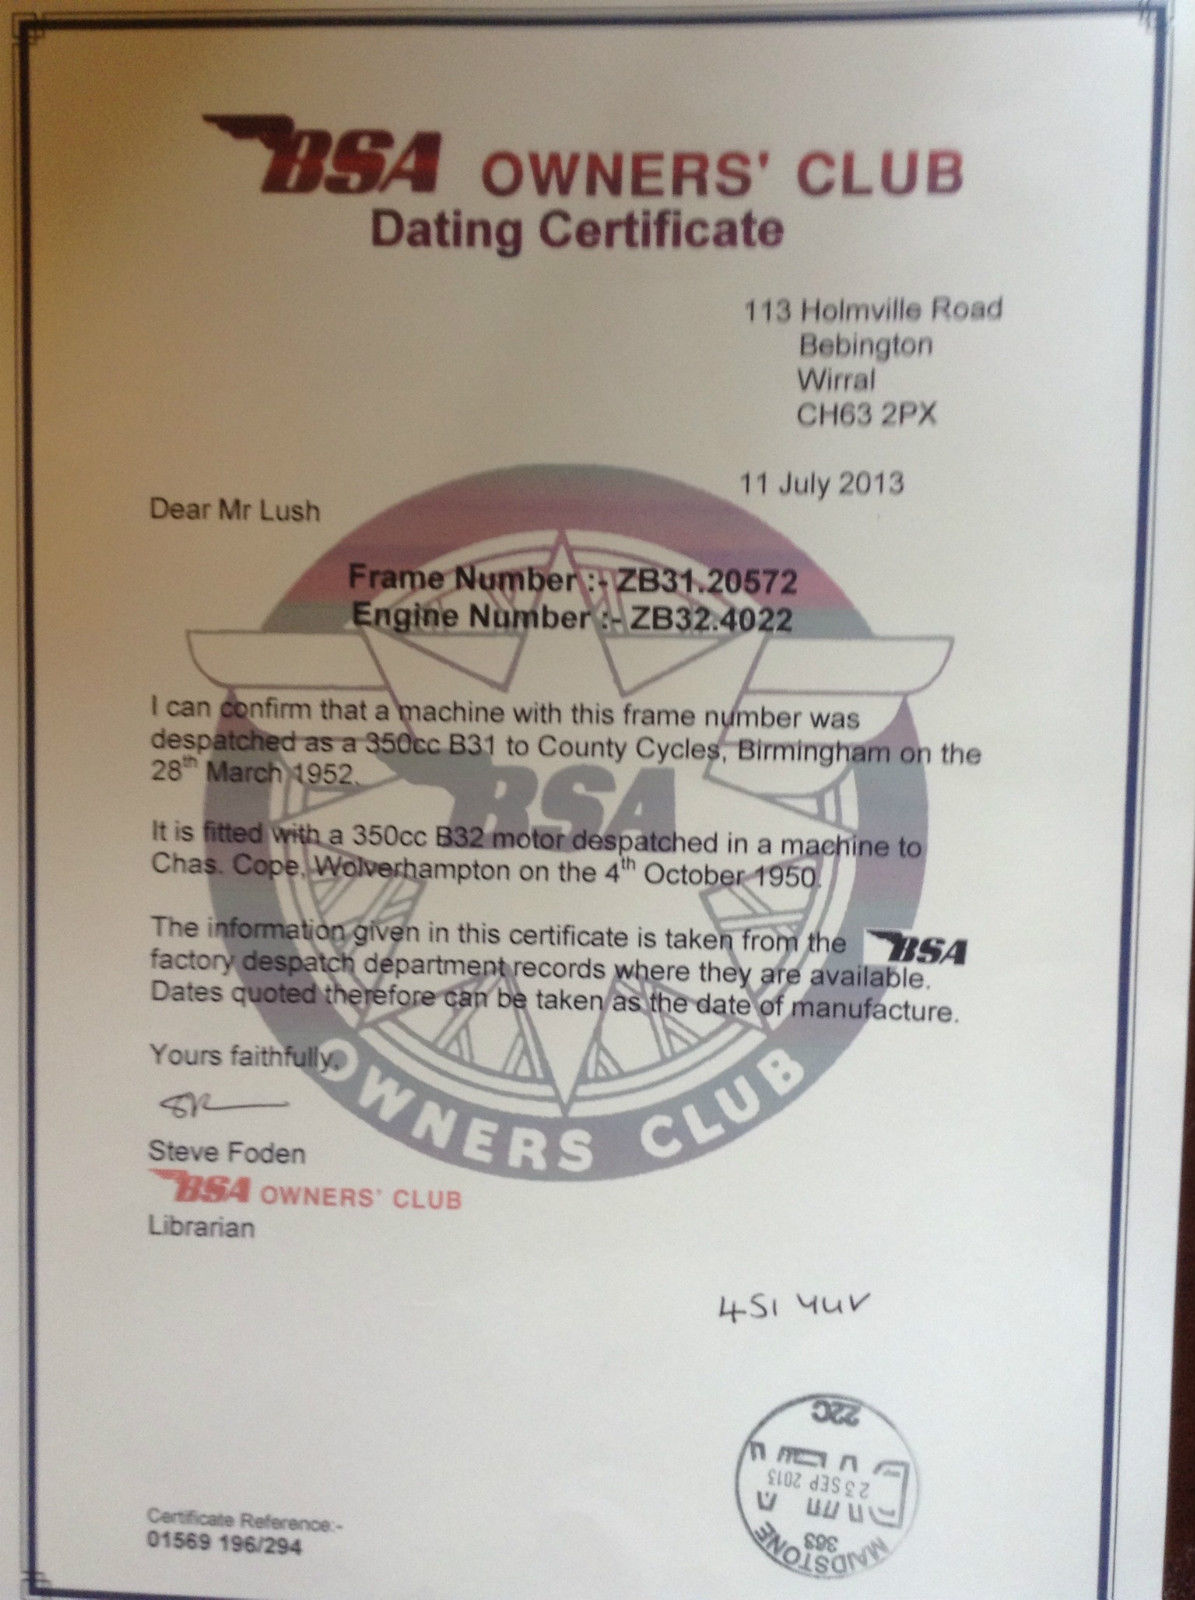 Bsa owners club dating service